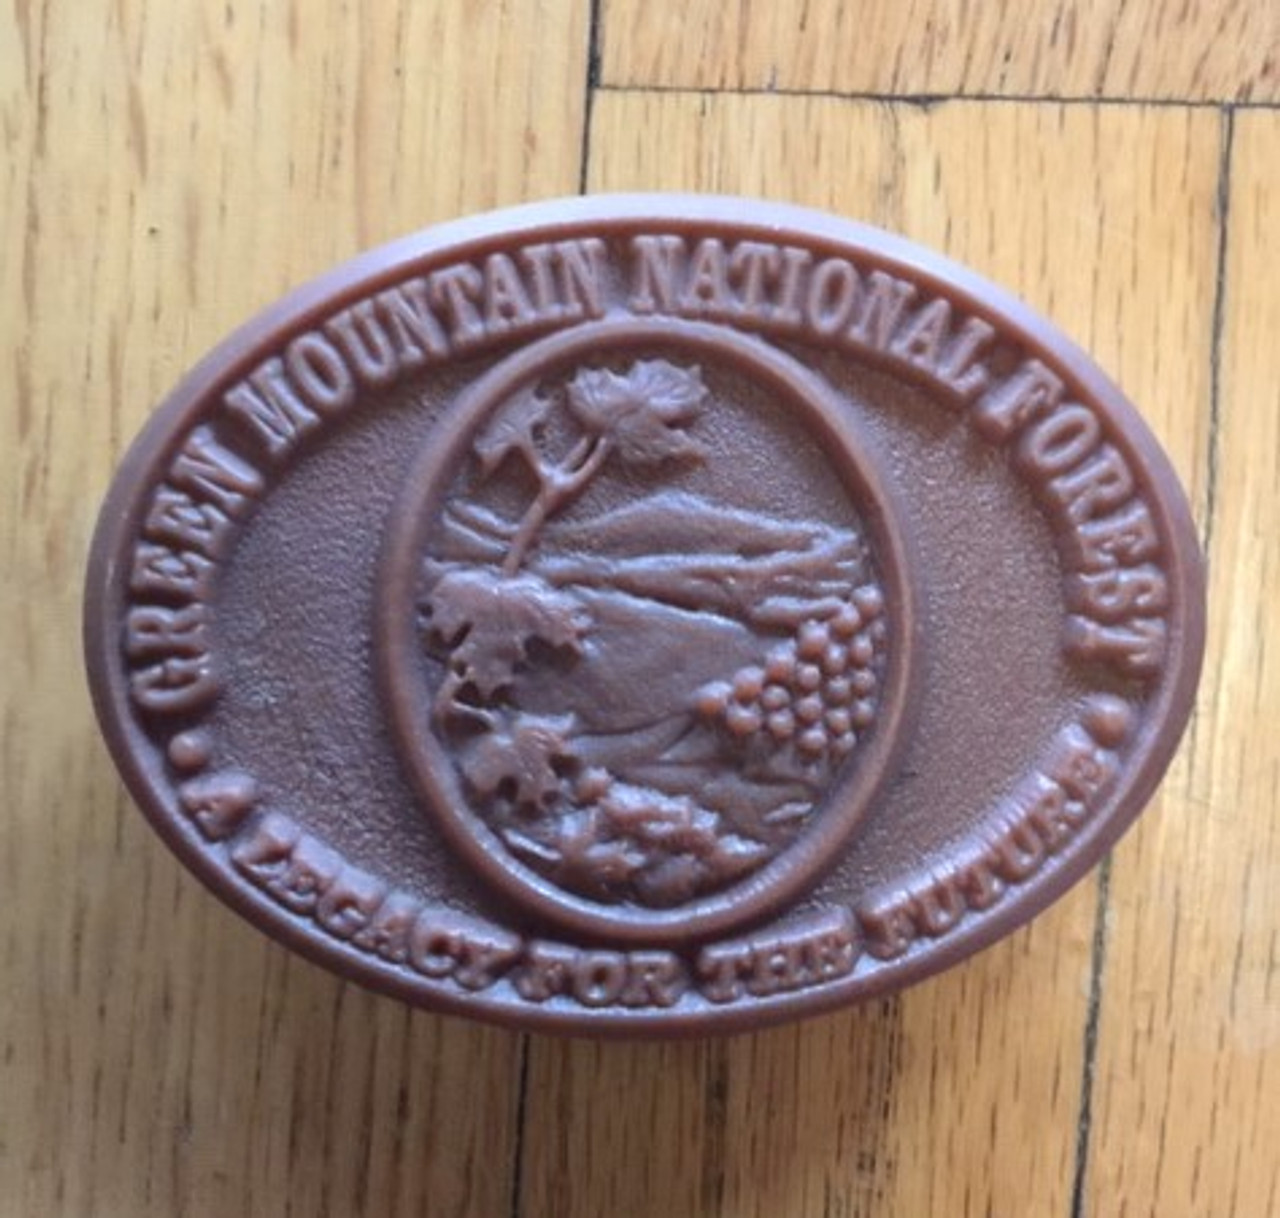 Green Mountain National Forest Buckle